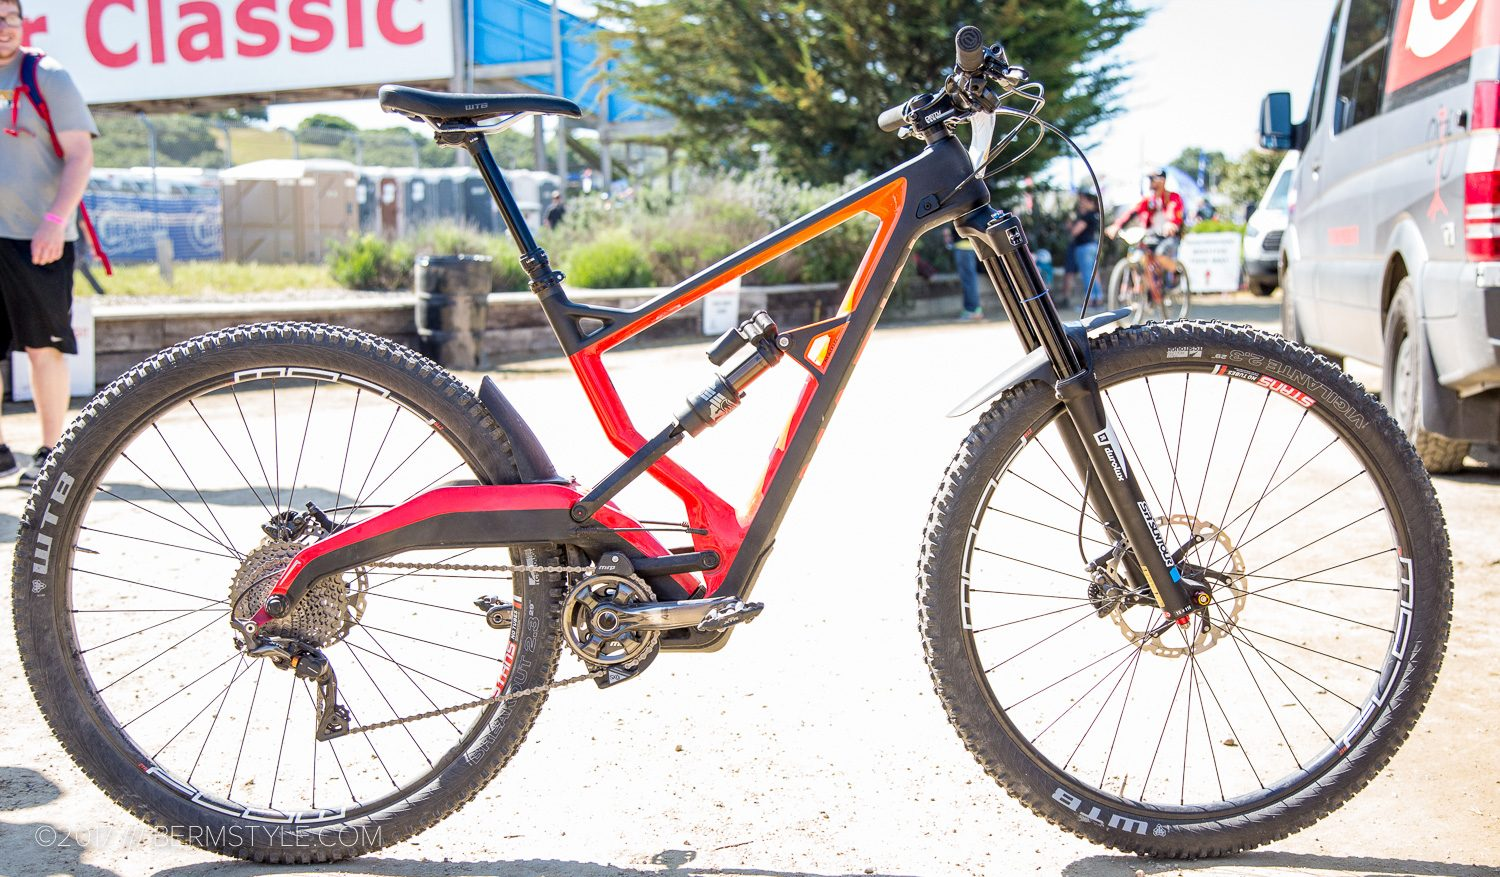 The new Marin Wolf Ridge Pro featuring the innovative R3ACT 2PLAY suspension